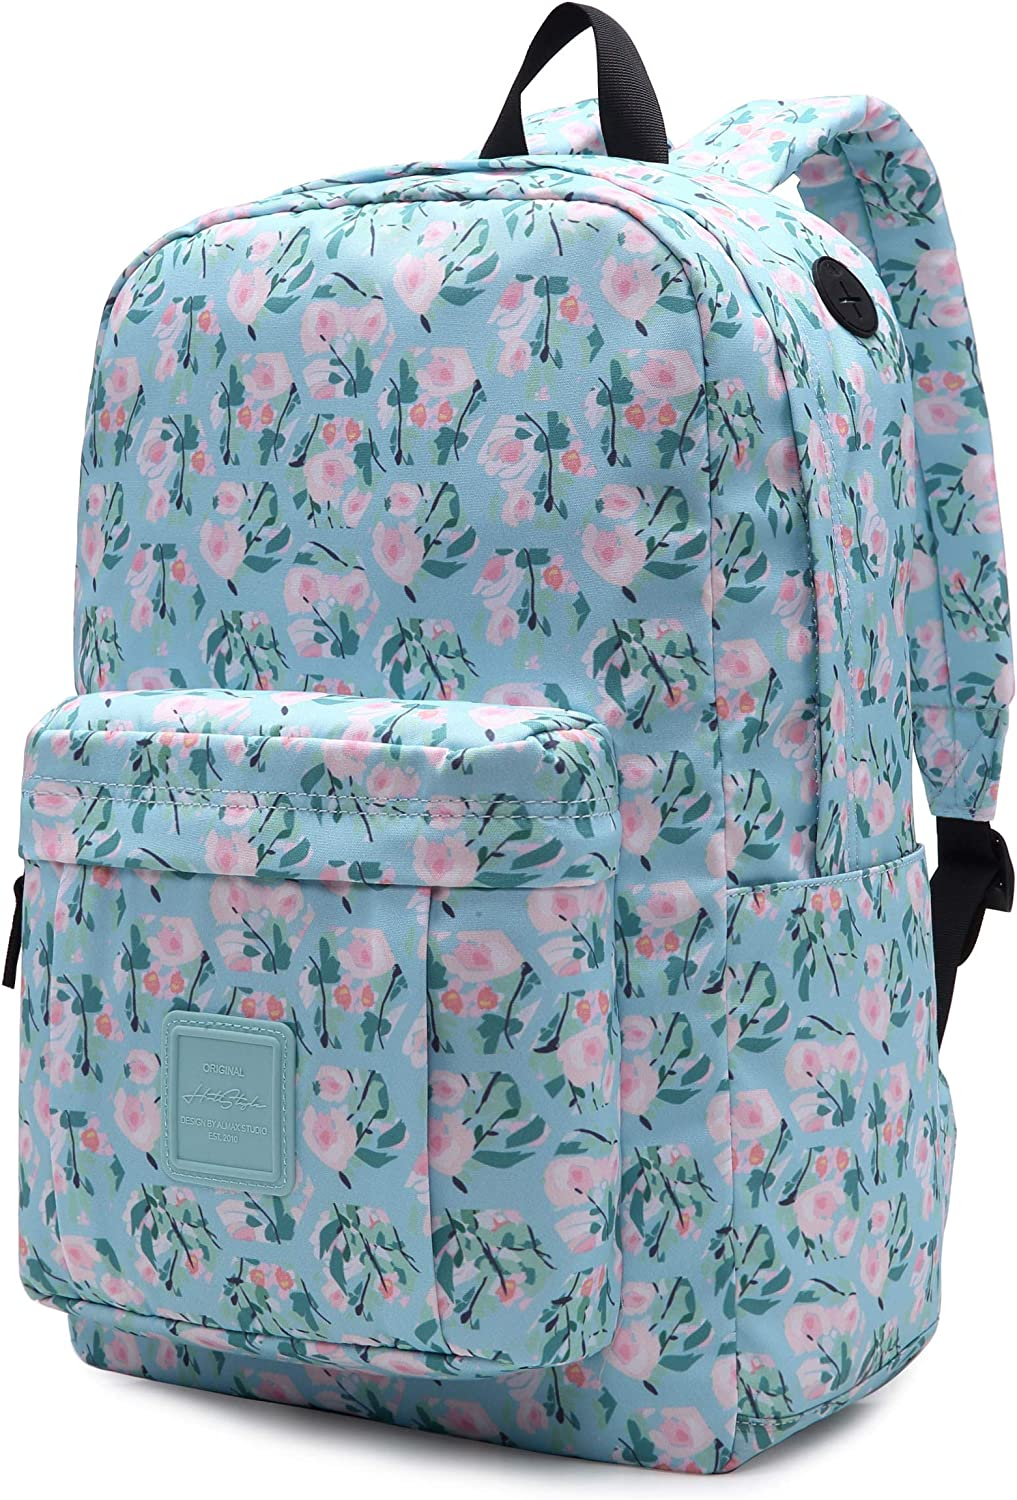 599s Floral School Backpack For Teen Girls, Water resistance & Durable Bookbag Cute for College, Long Rose, PaleTurquoise